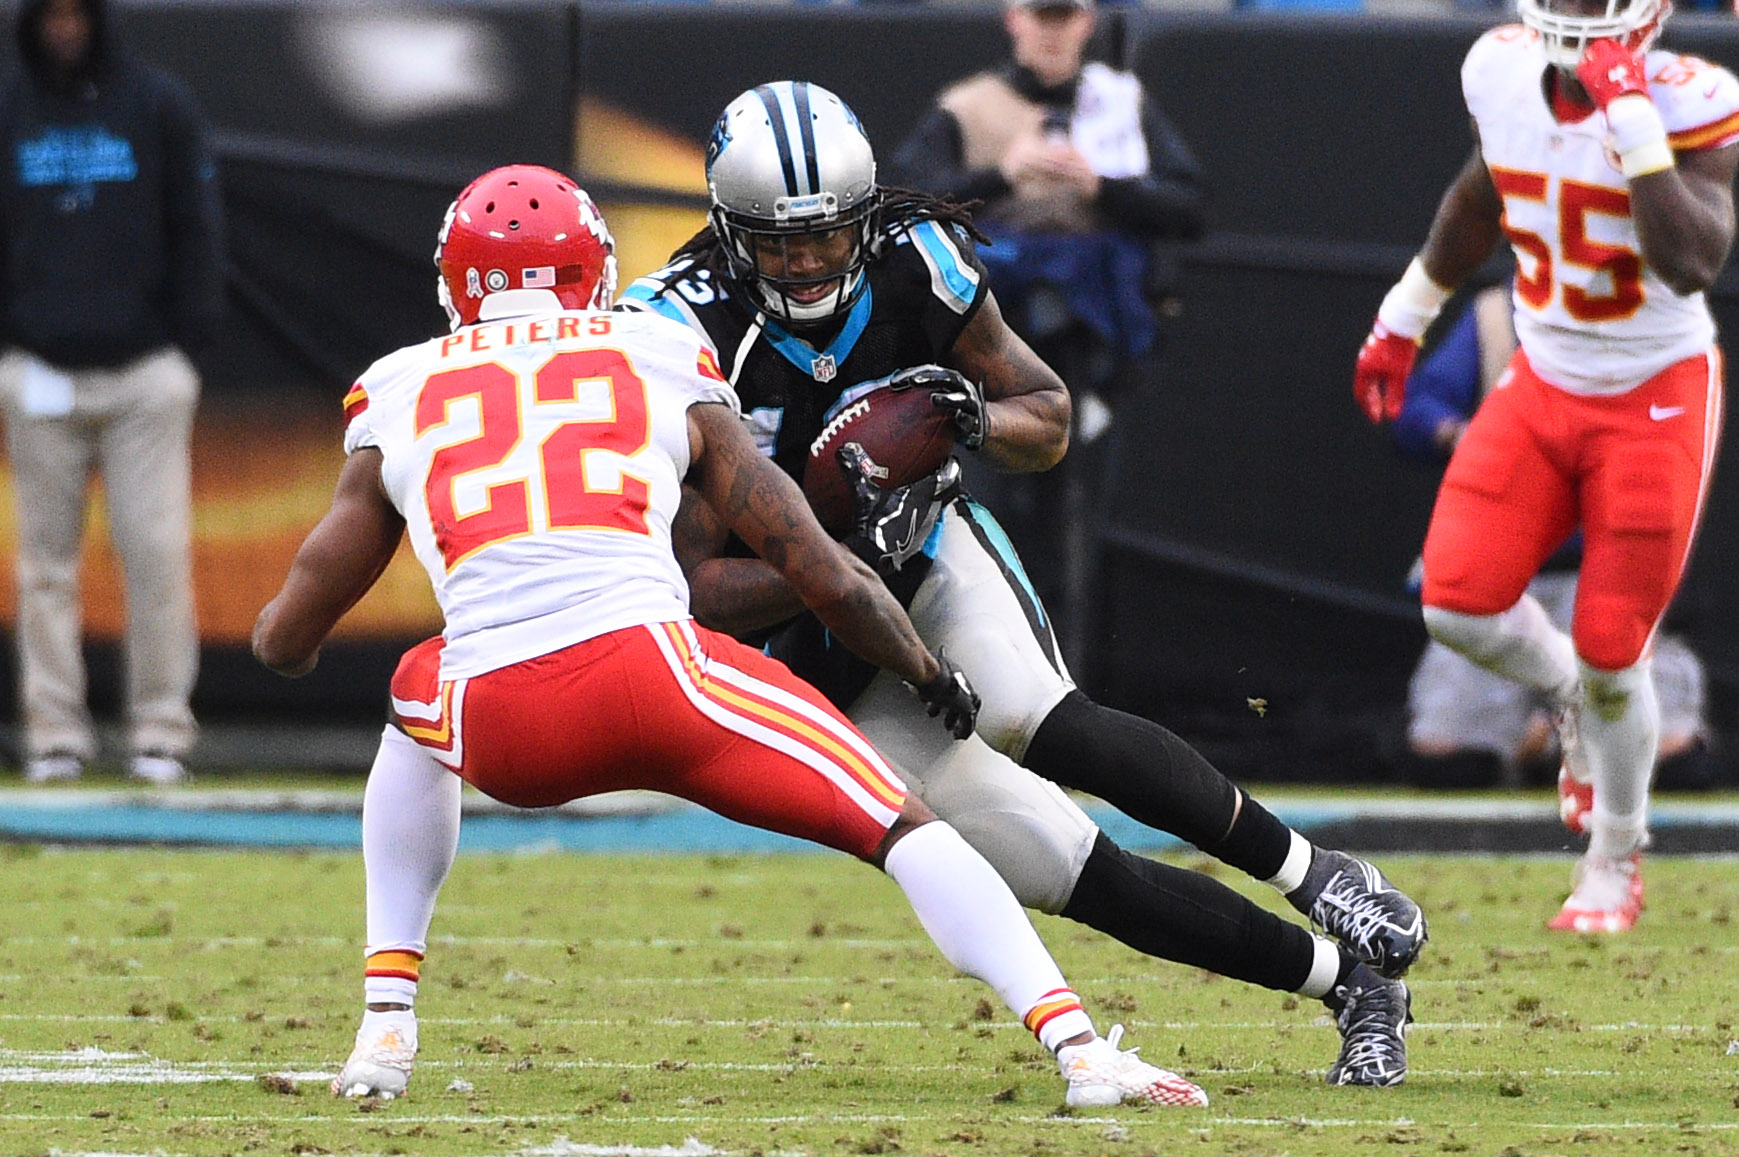 Nov 13, 2016; Charlotte, NC, USA; Carolina Panthers wide receiver Kelvin Benjamin (13) before being stripped of the ball by Kansas City Chiefs cornerback Marcus Peters (22) with 29 seconds left in the fourth quarter. The Chiefs defeated the Panthers 20-17 at Bank of America Stadium. Mandatory Credit: Bob Donnan-USA TODAY Sports